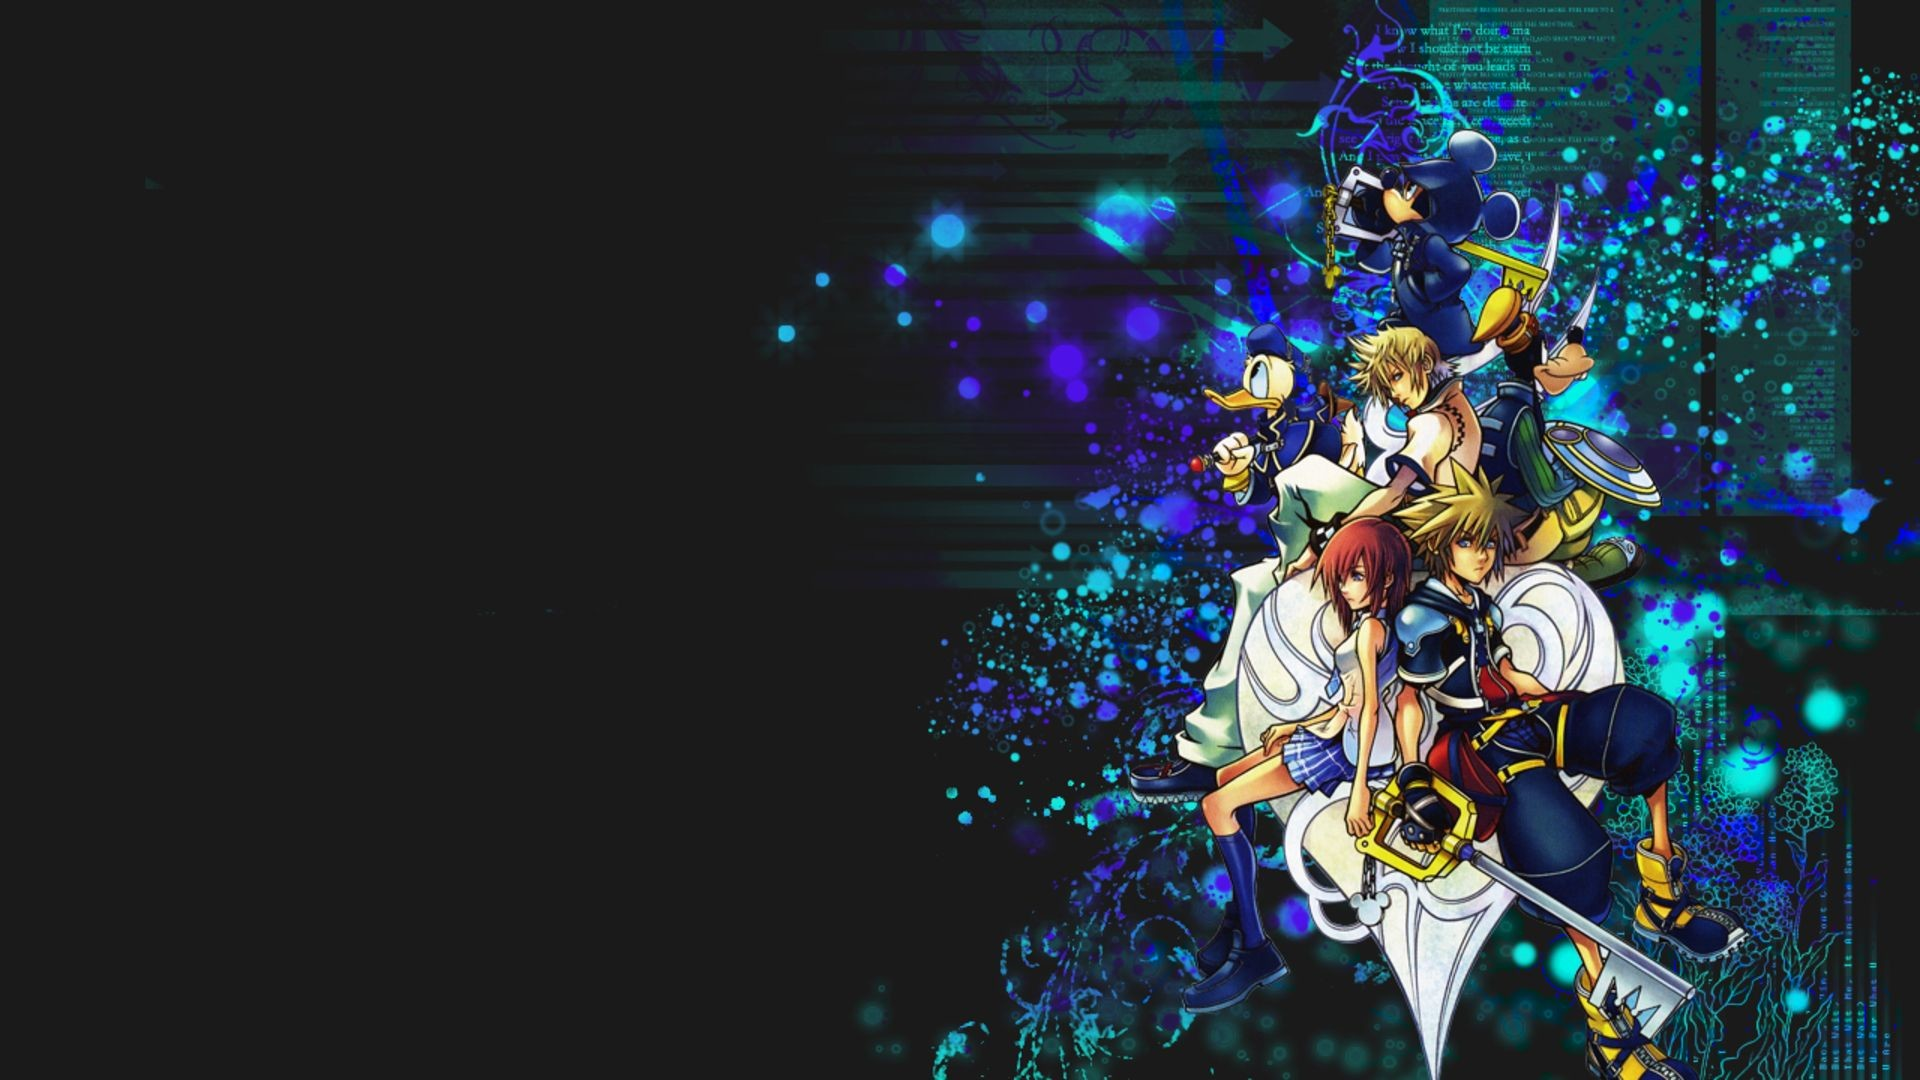 "1920x1080 964x1446 iPhone Wallpapers - Kingdom Hearts Insider"">"